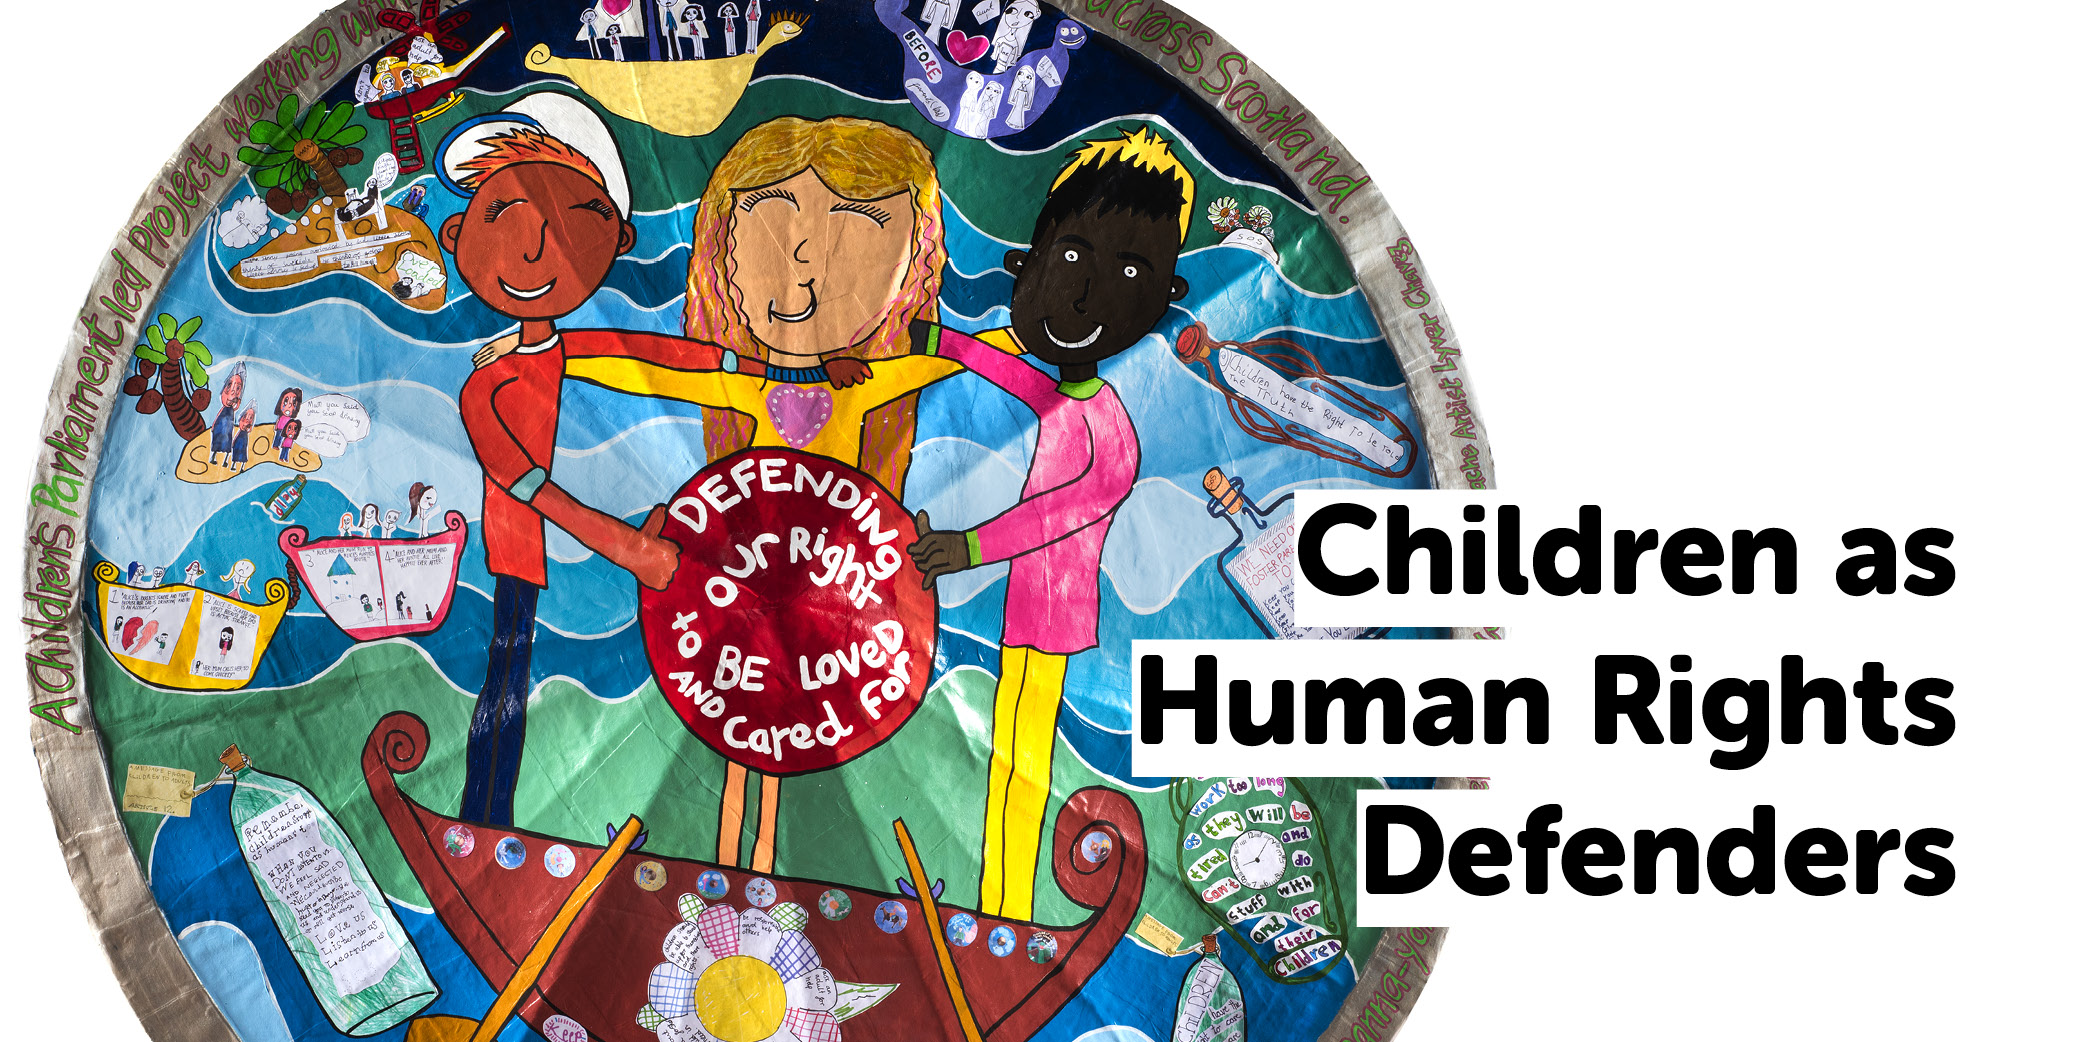 Children as Human Rights Defenders